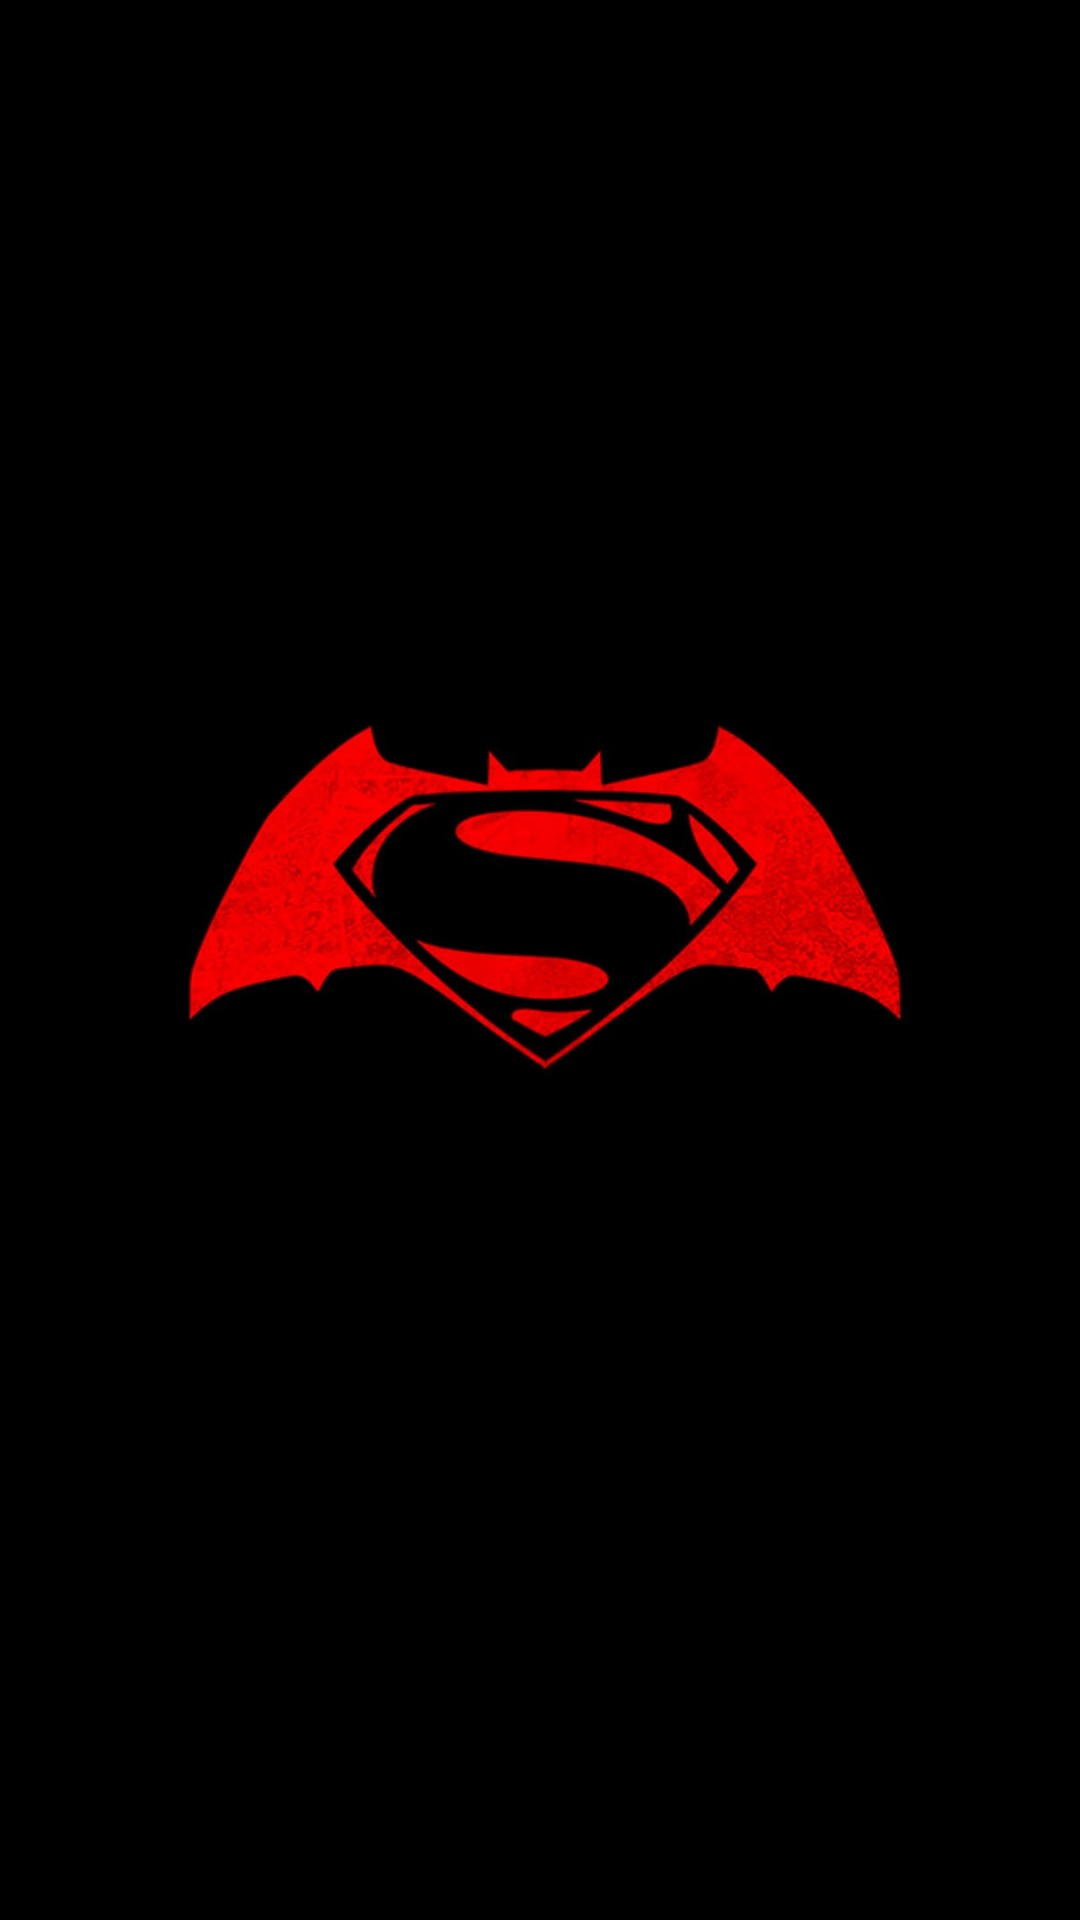 Batman v Superman logo Wallpaper for SAMSUNG Galaxy S5